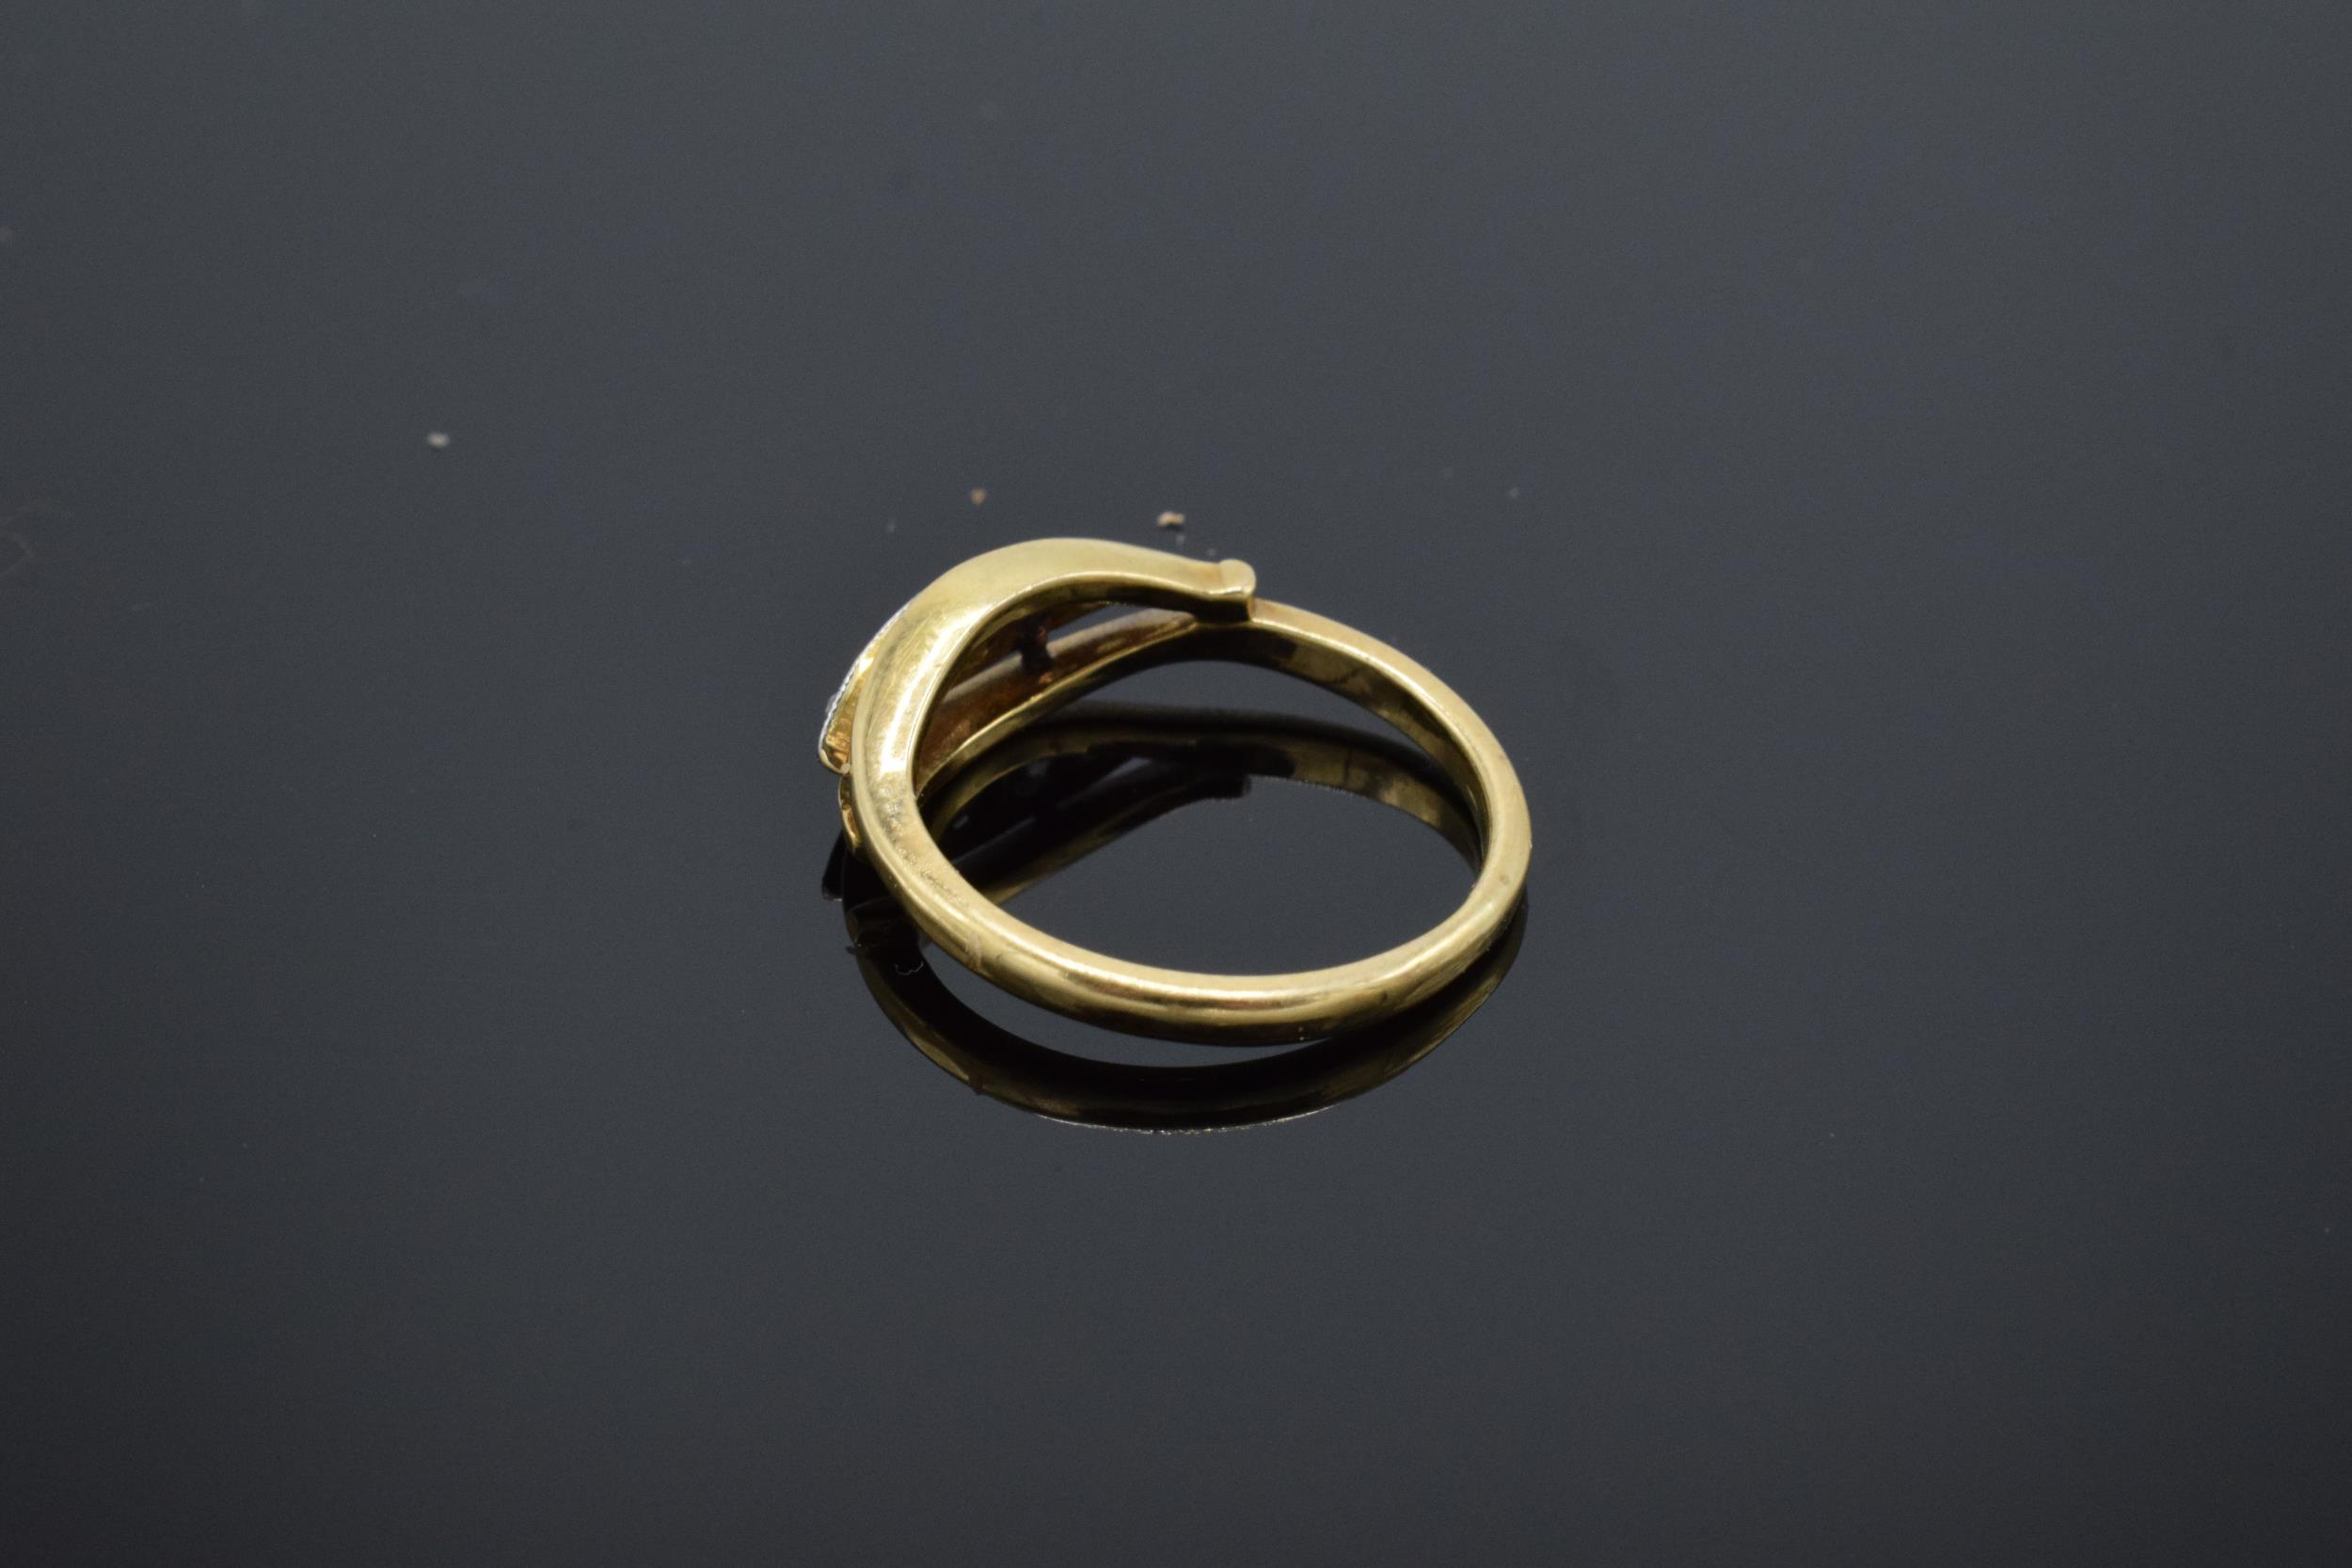 18ct gold ring set with 5 diamonds. UK size K/L. 2.7 grams. In good condition. - Image 2 of 3